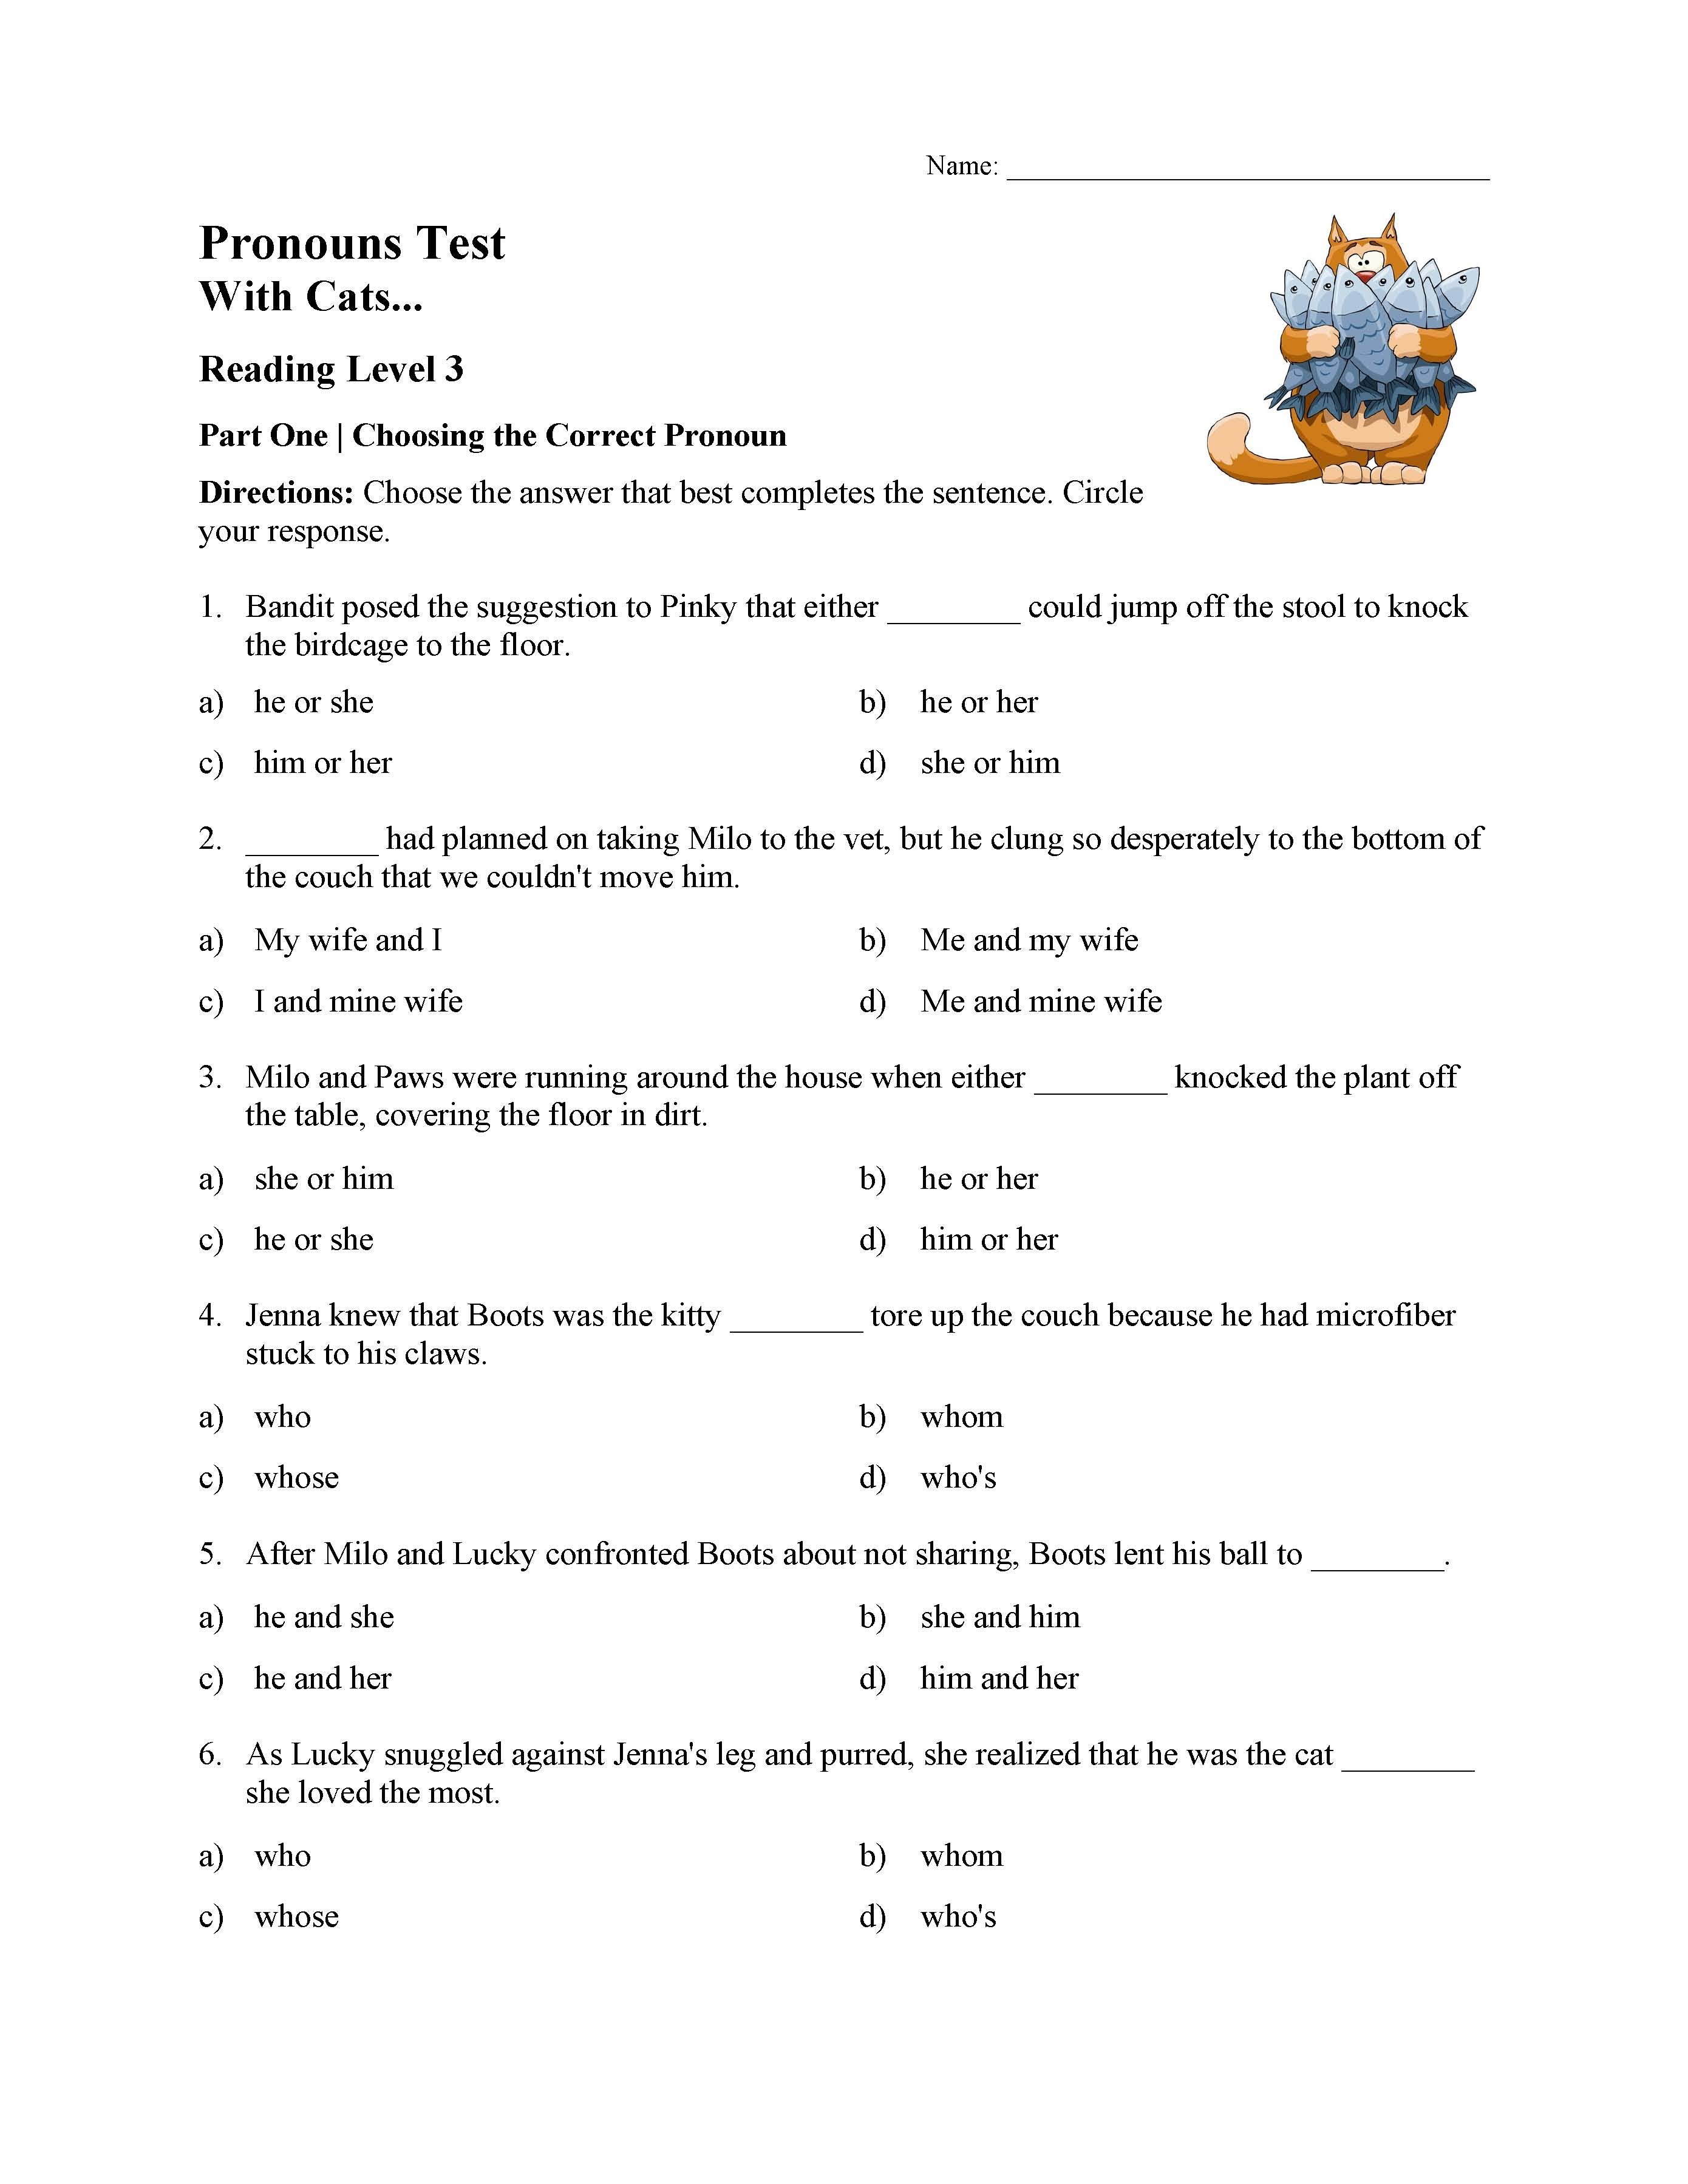 Pronouns Test With Cats